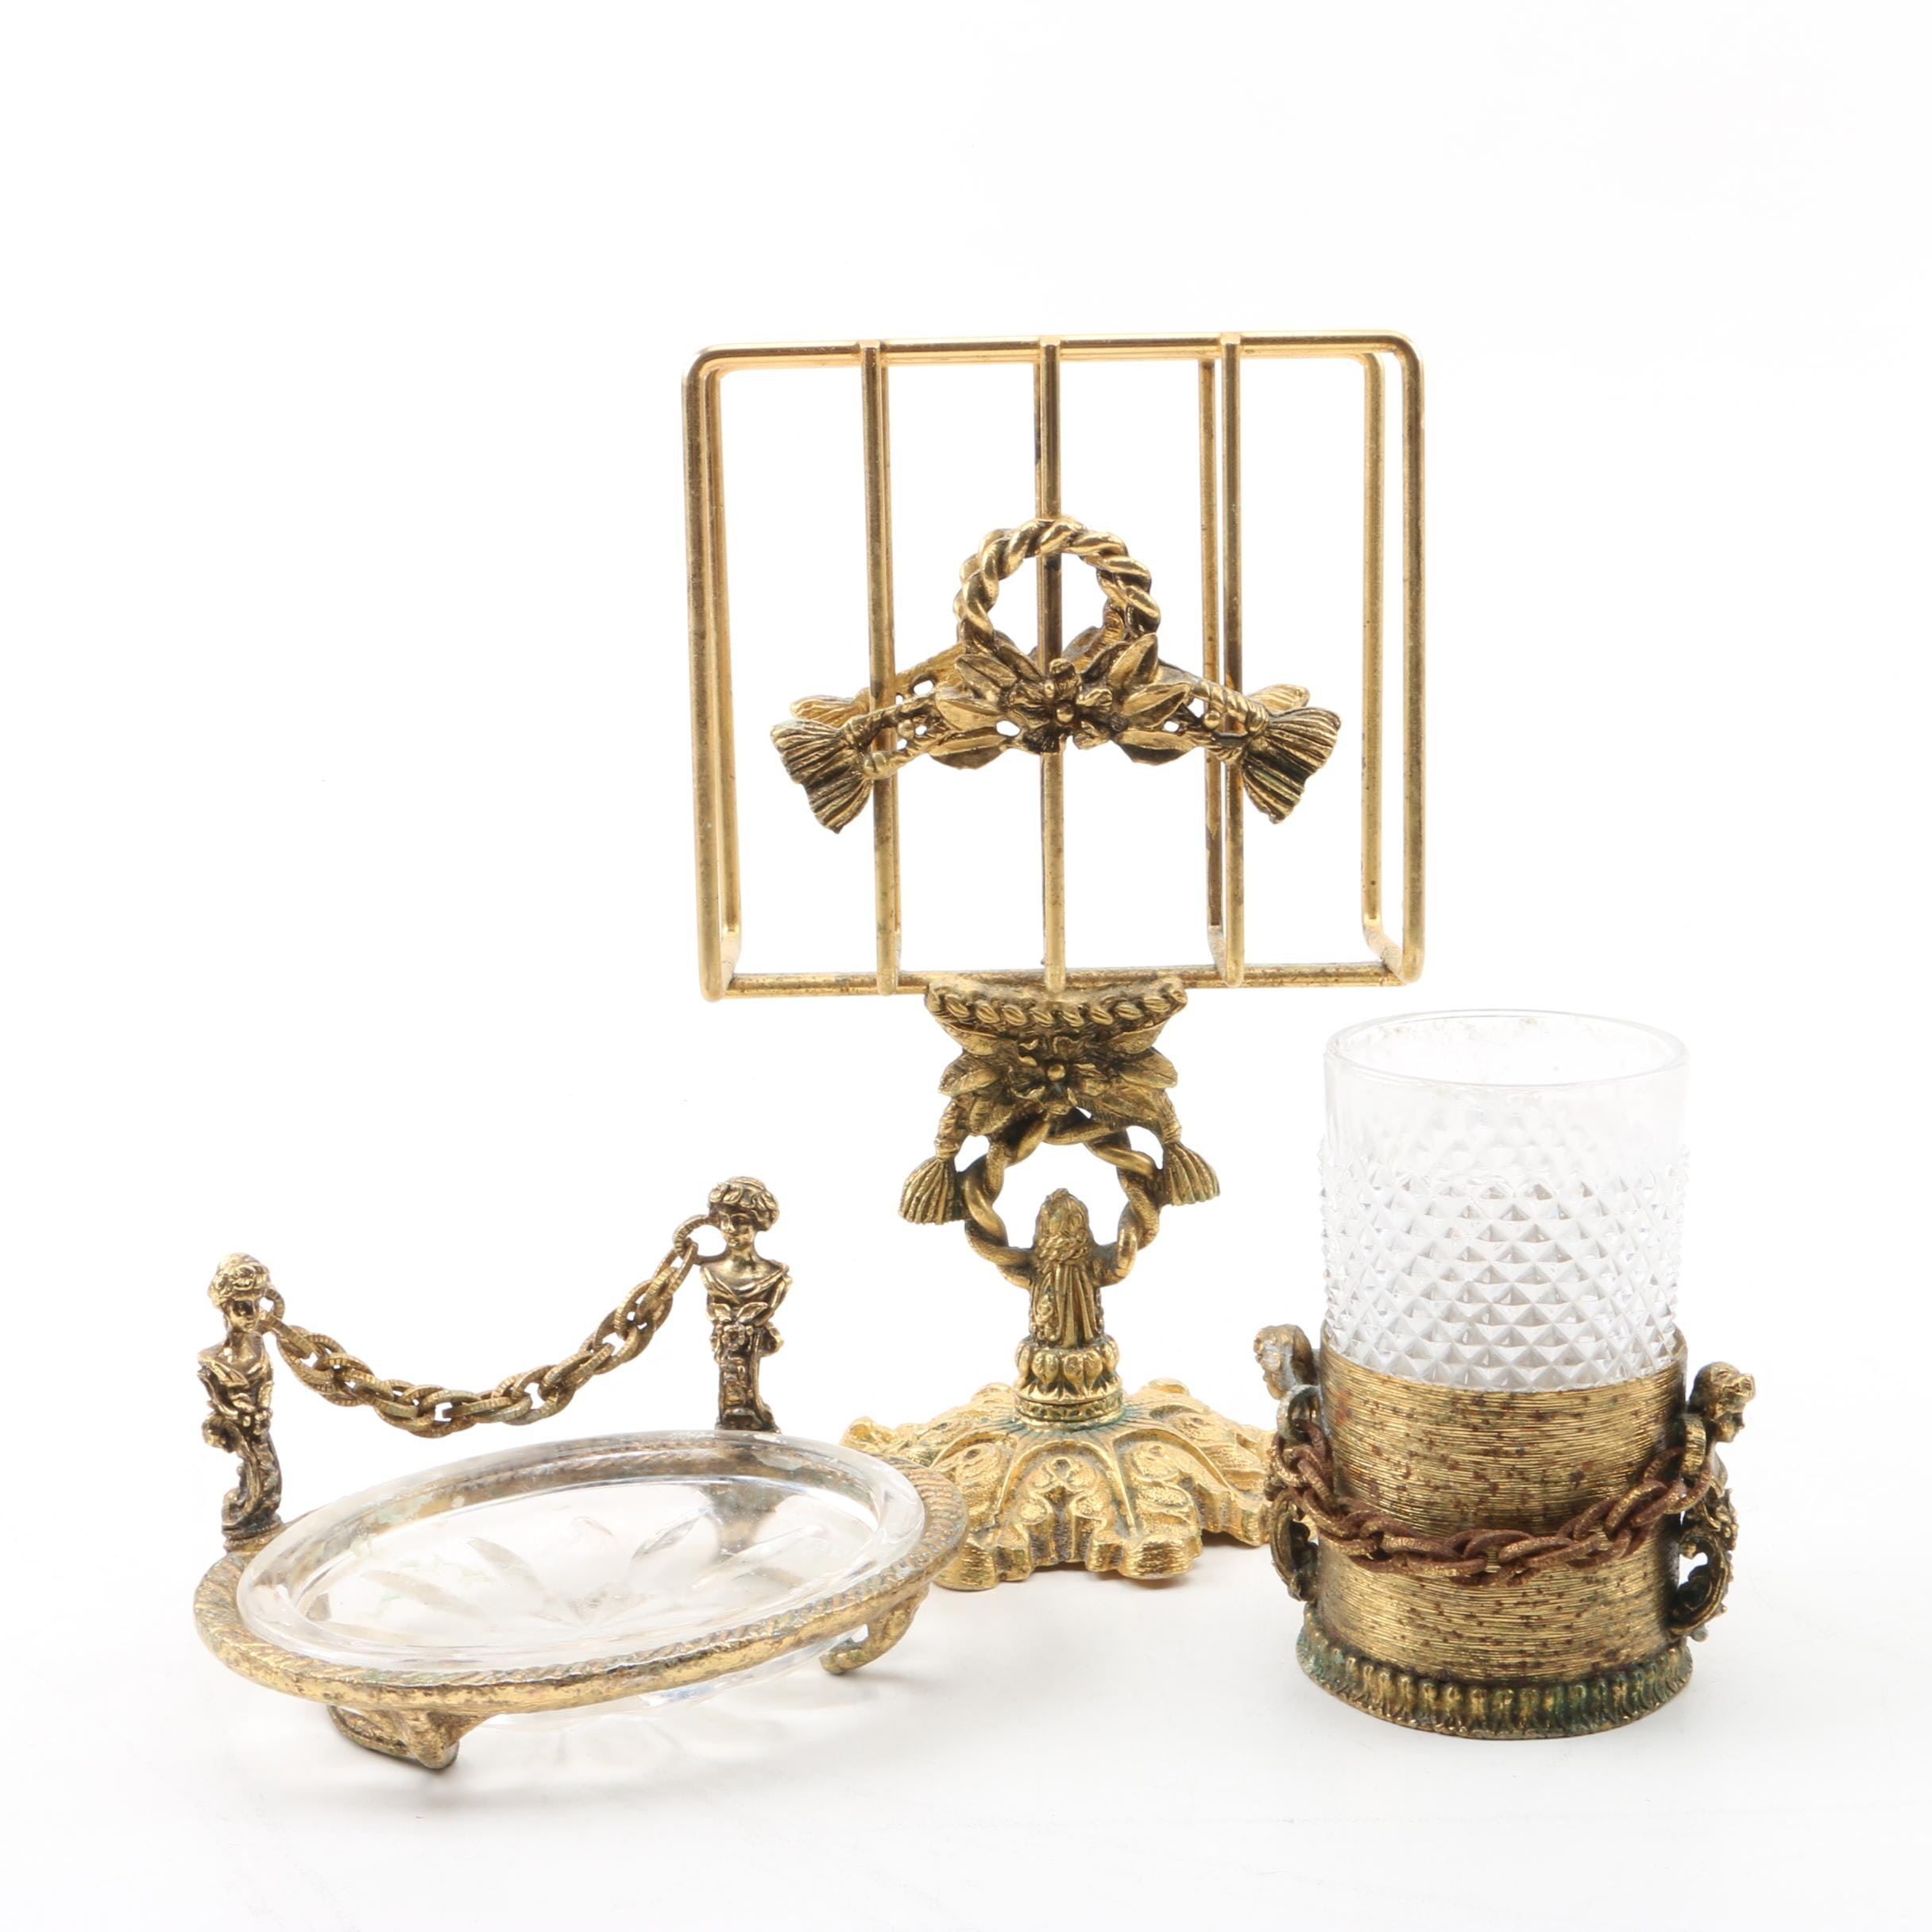 Gold Tone Renaissance Style Bathroom Accessories